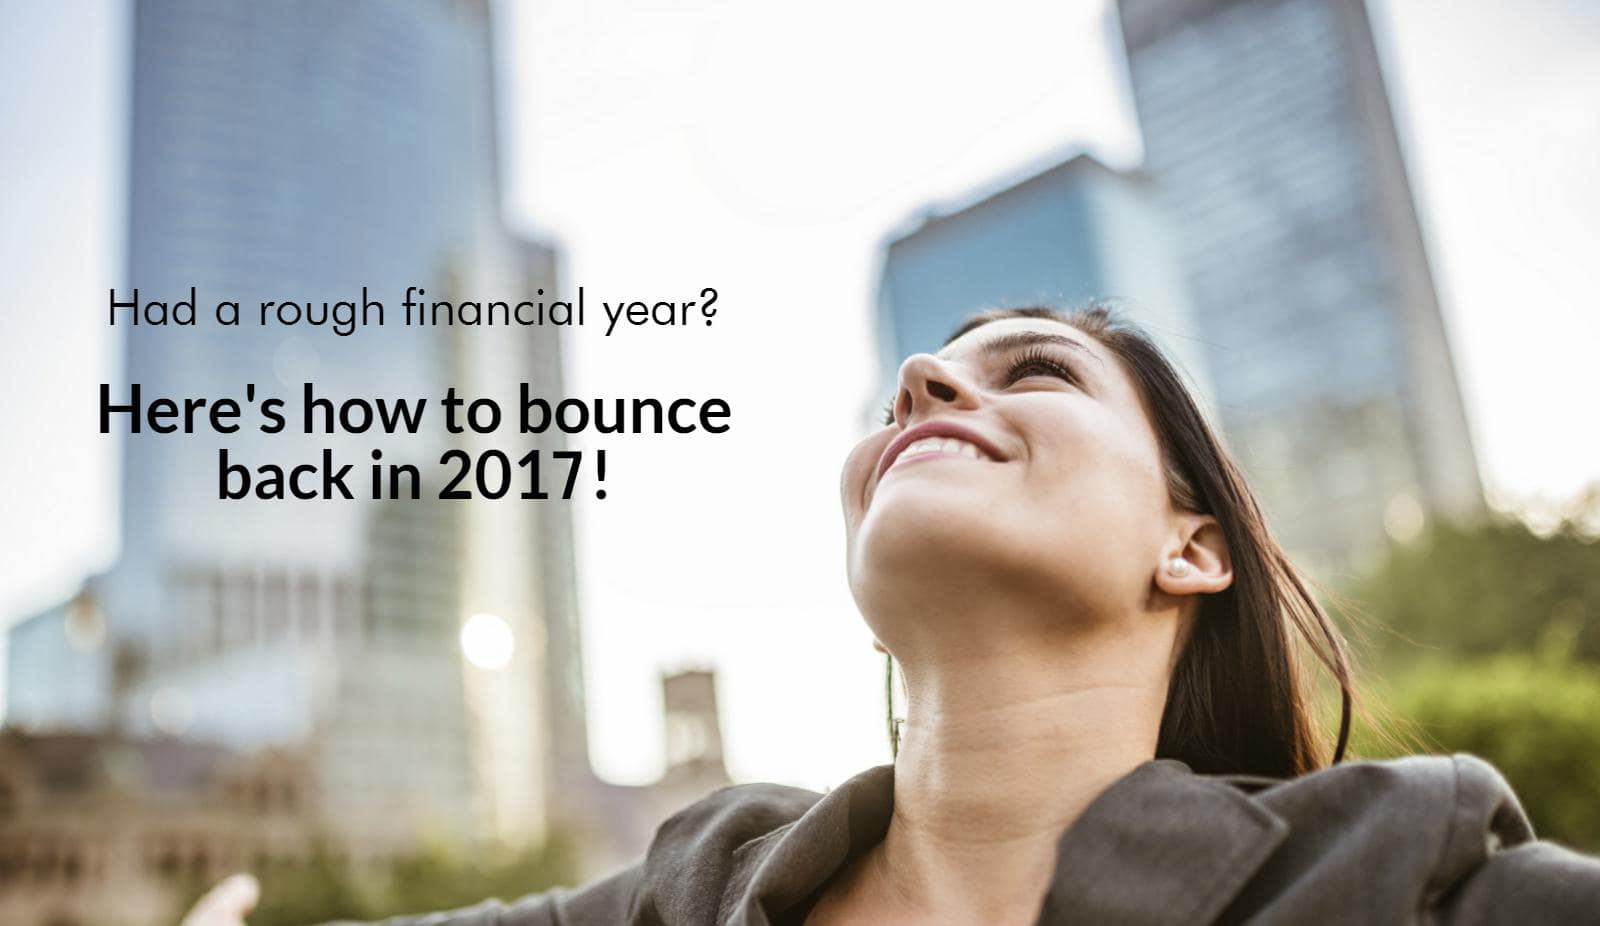 Had a rough financial year? Here's how to bounce back in 2017